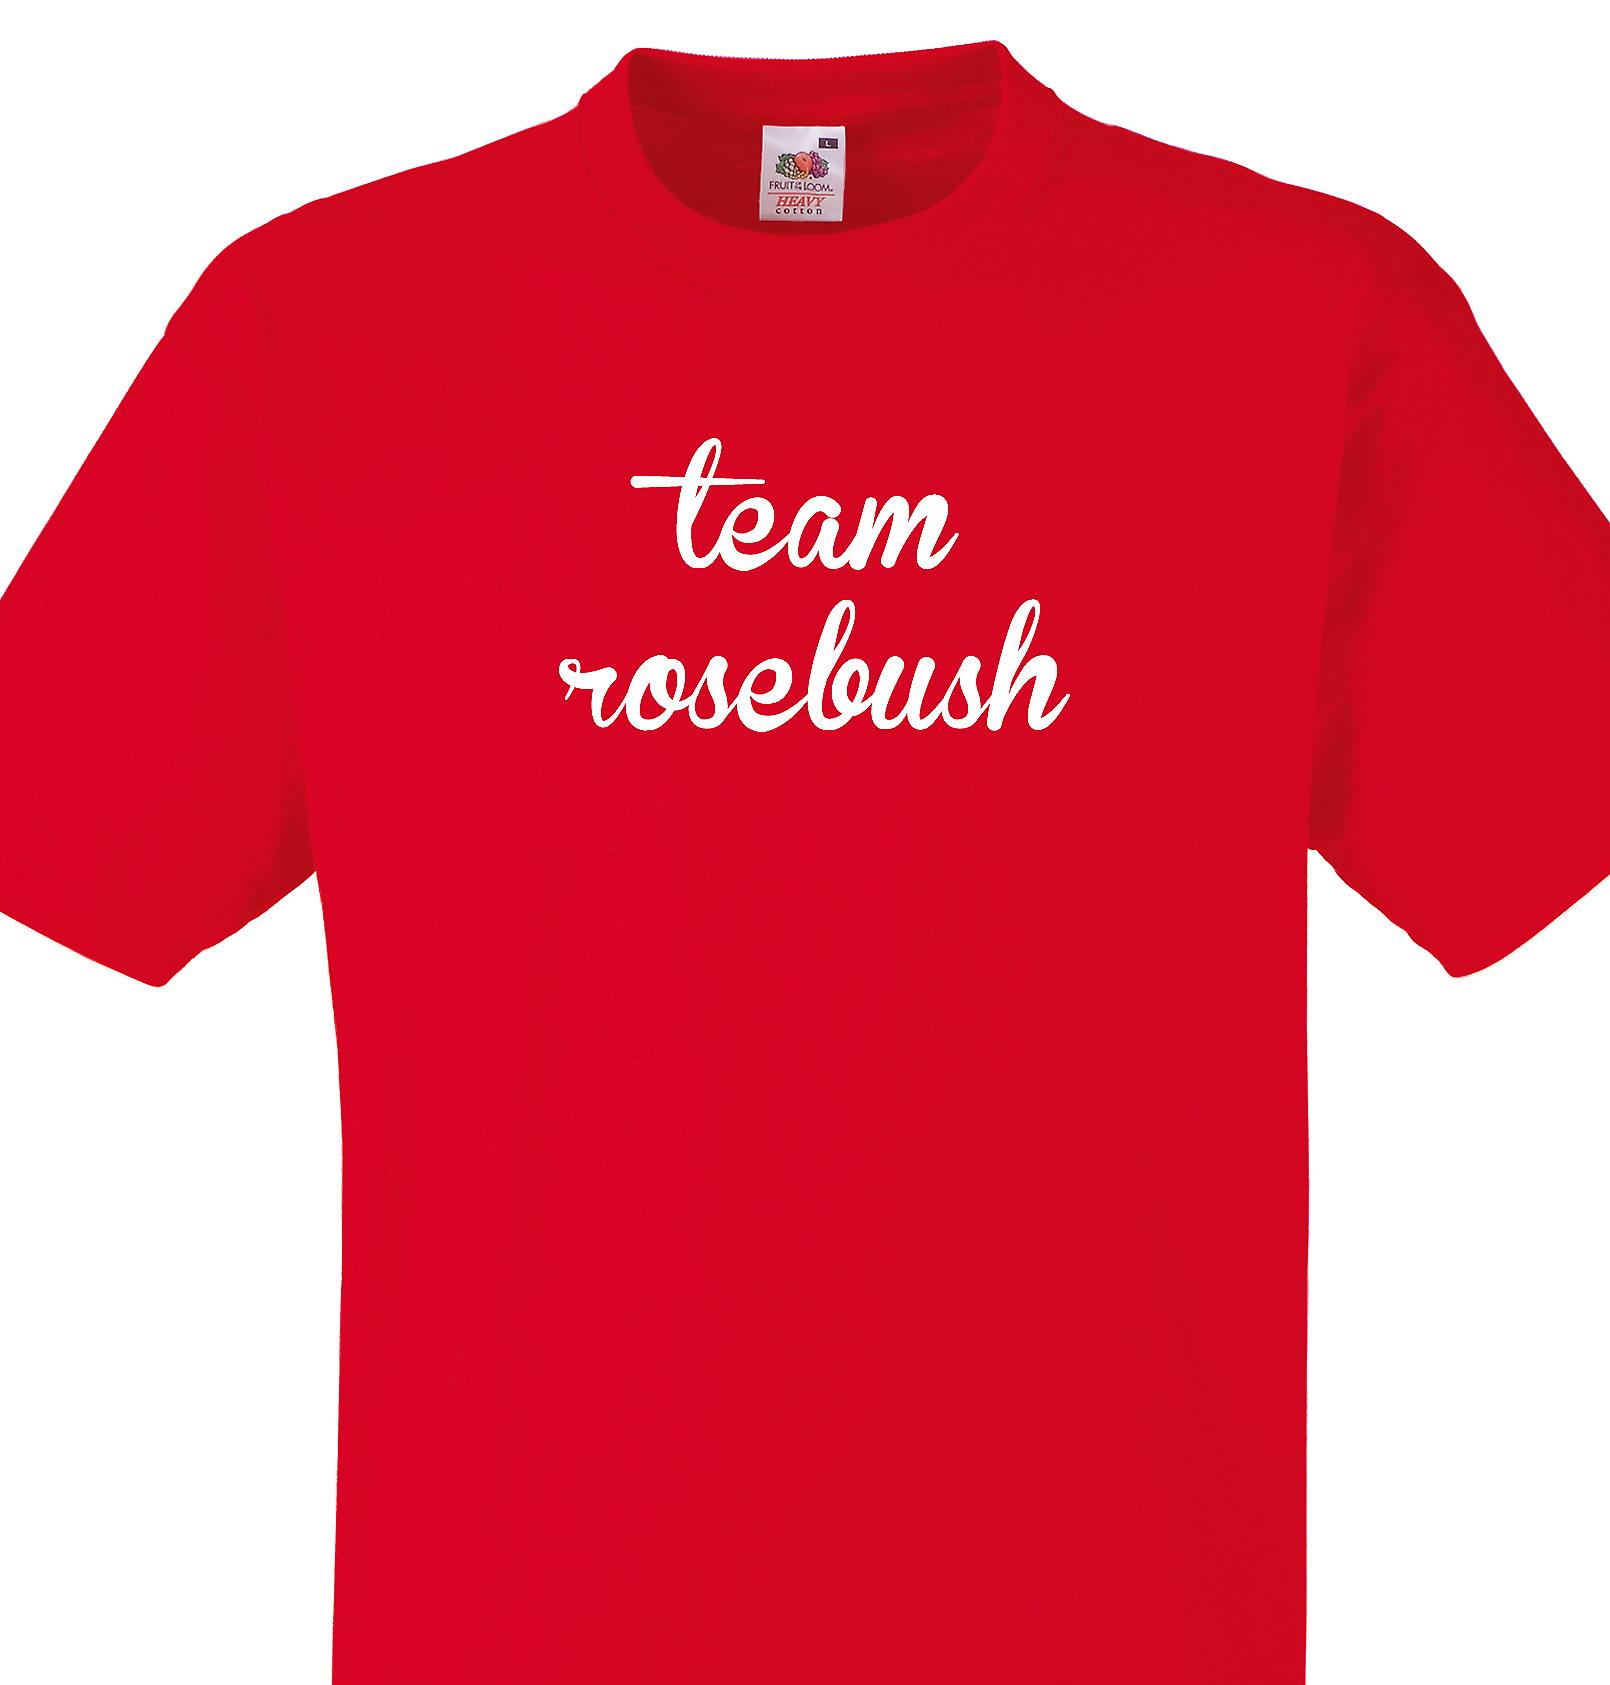 Team Rosebush Red T shirt